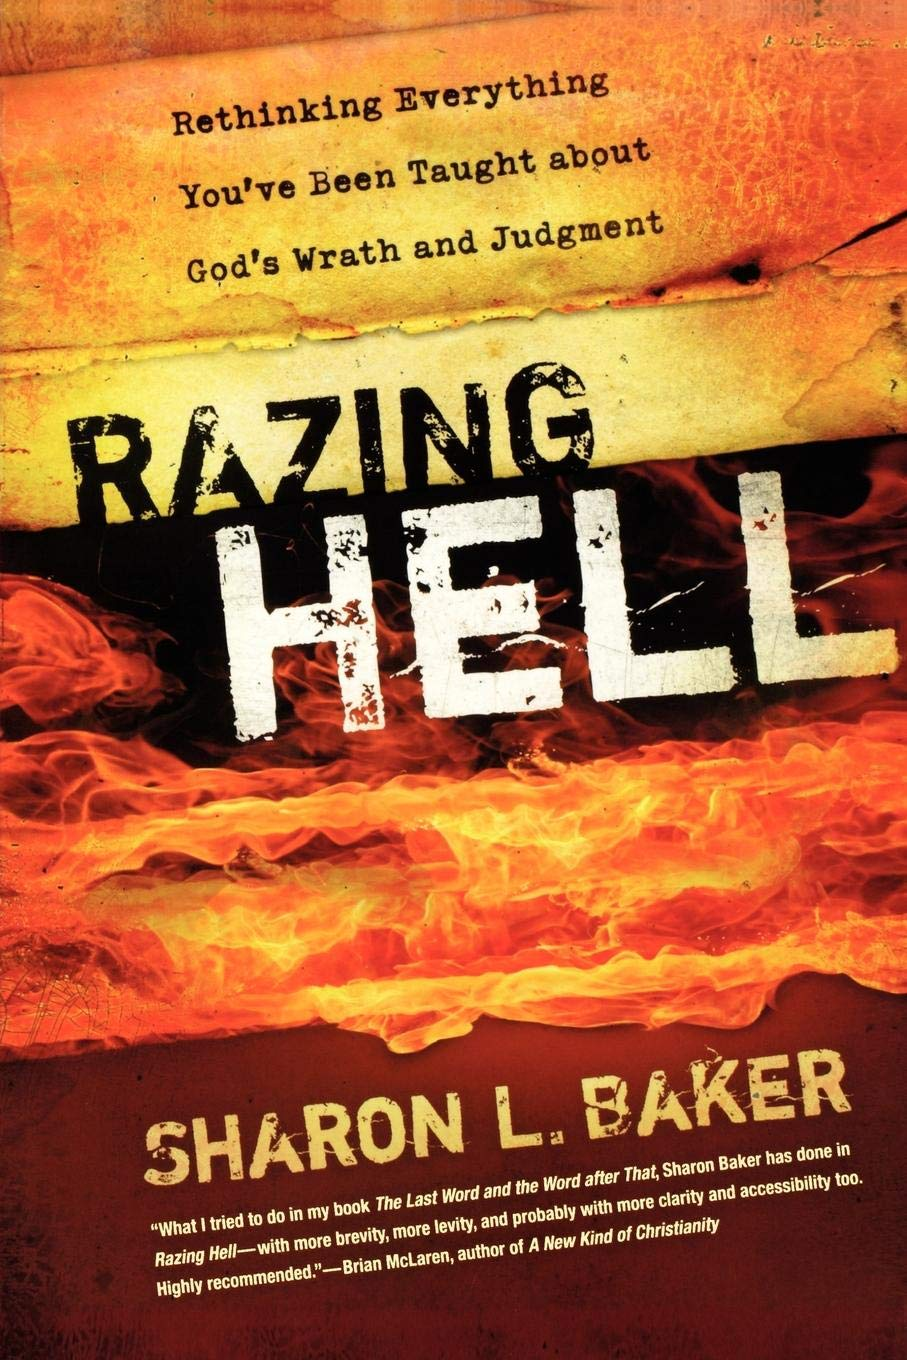 Razing Hell: Rethinking Everything You've Been Taught about